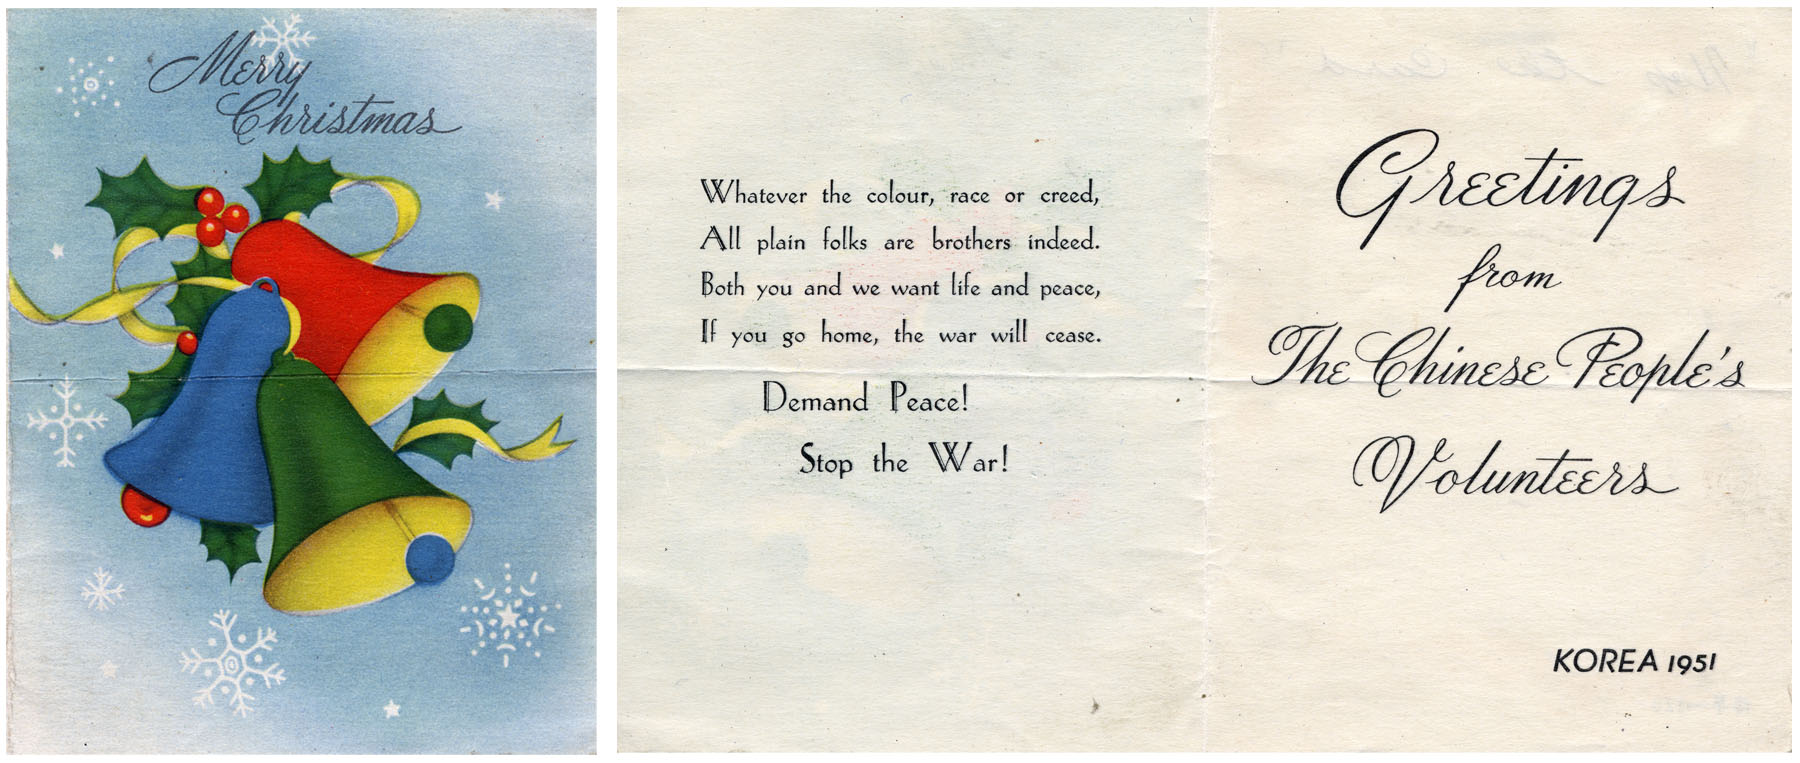 File:China Christmas card Korean war.jpg - Wikimedia Commons